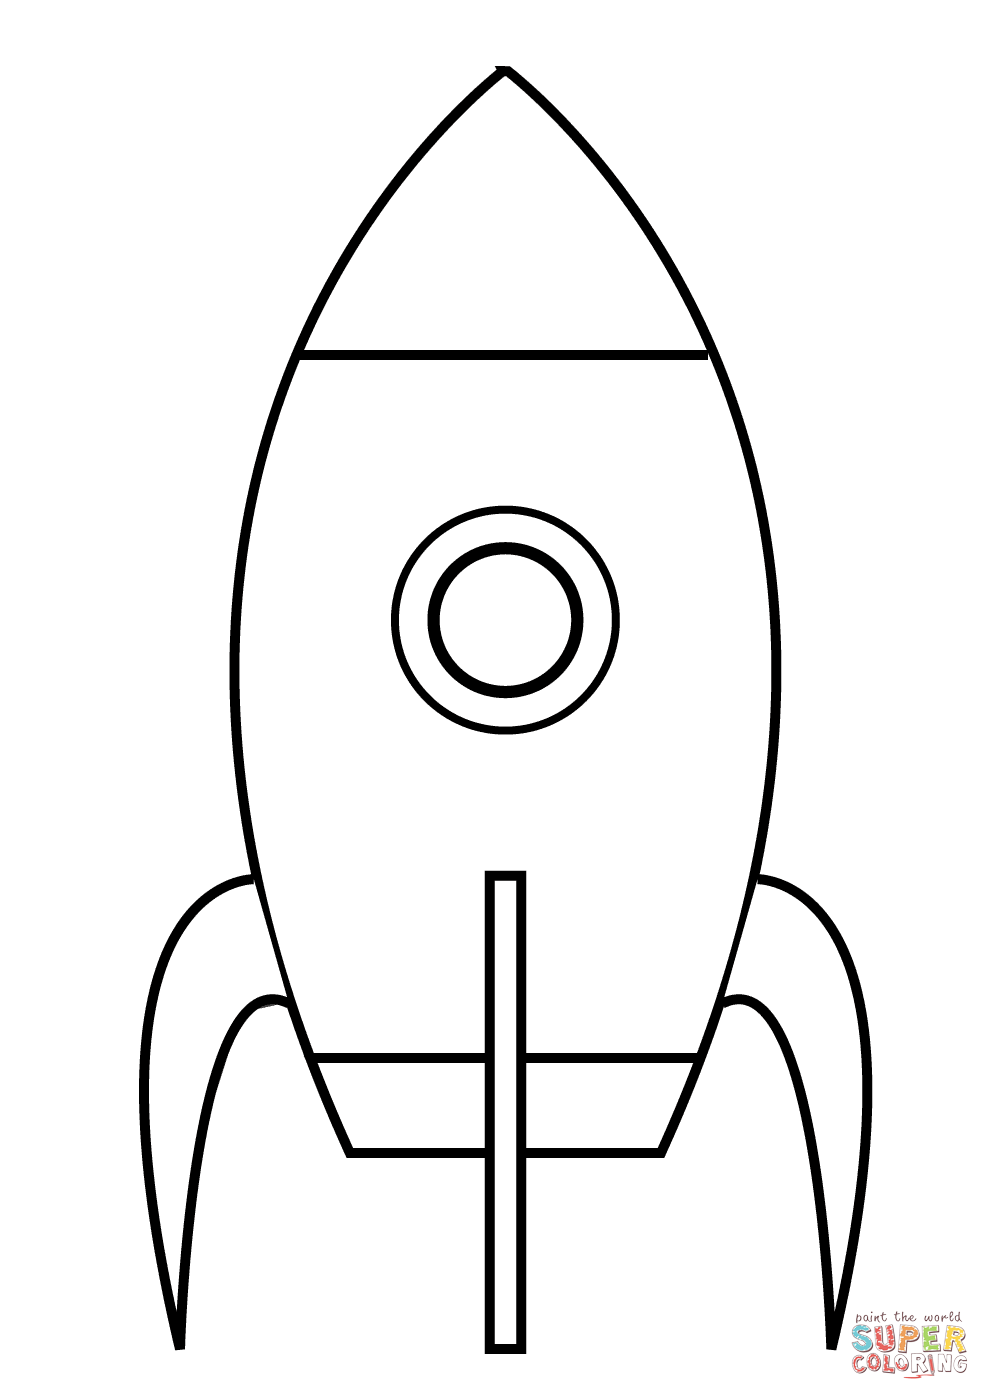 990x1400 Very Simple Rocket Coloring Page Free Printable Coloring Pages